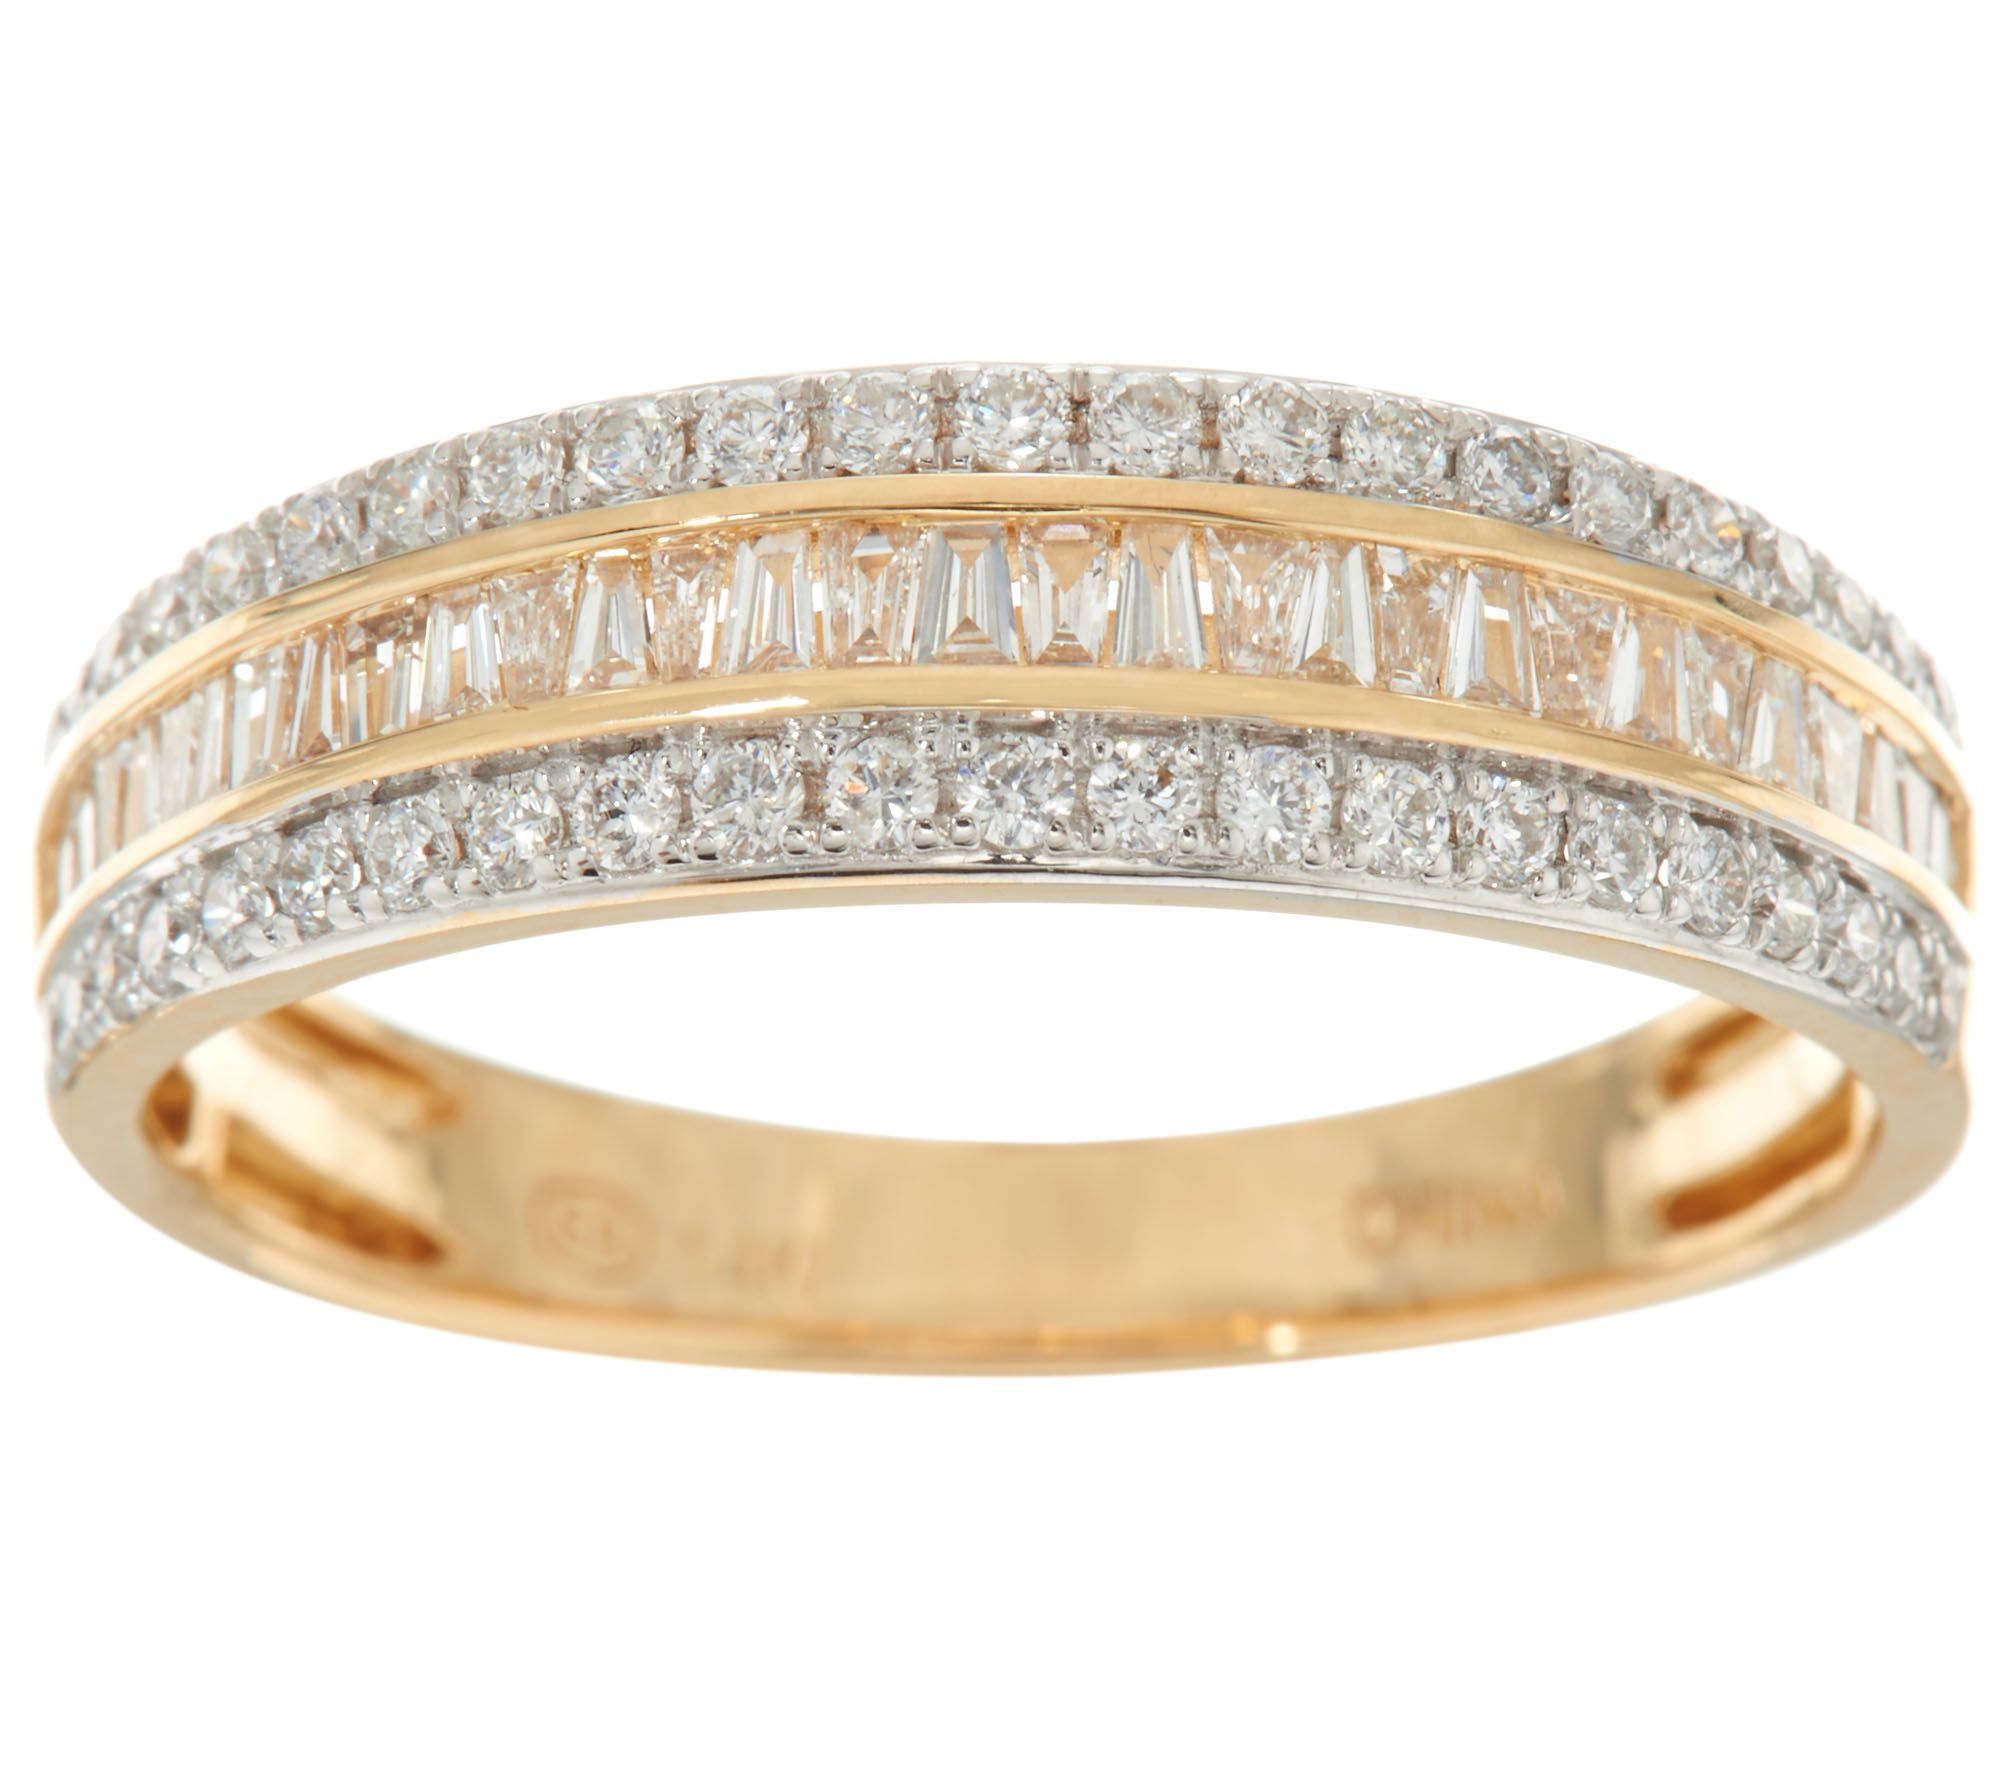 diamonds modern deco anniversary baguette band cut in antique product gold art white eternity bands